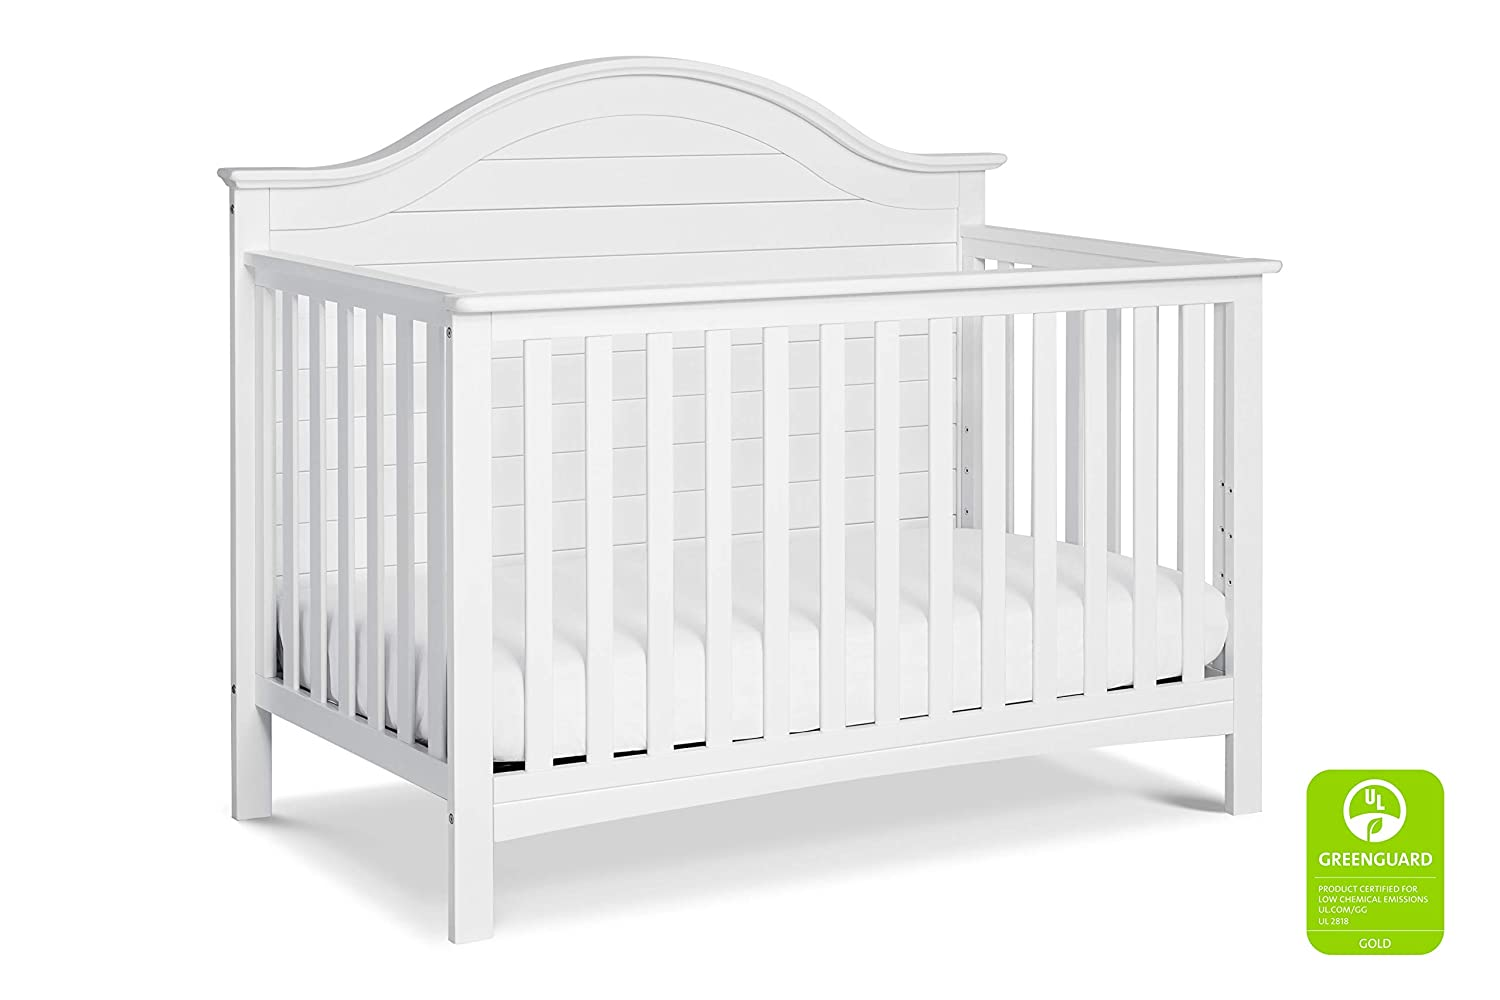 Carter s by DaVinci Nolan 4-in-1 Convertible Crib in White Greenguard Gold Certified